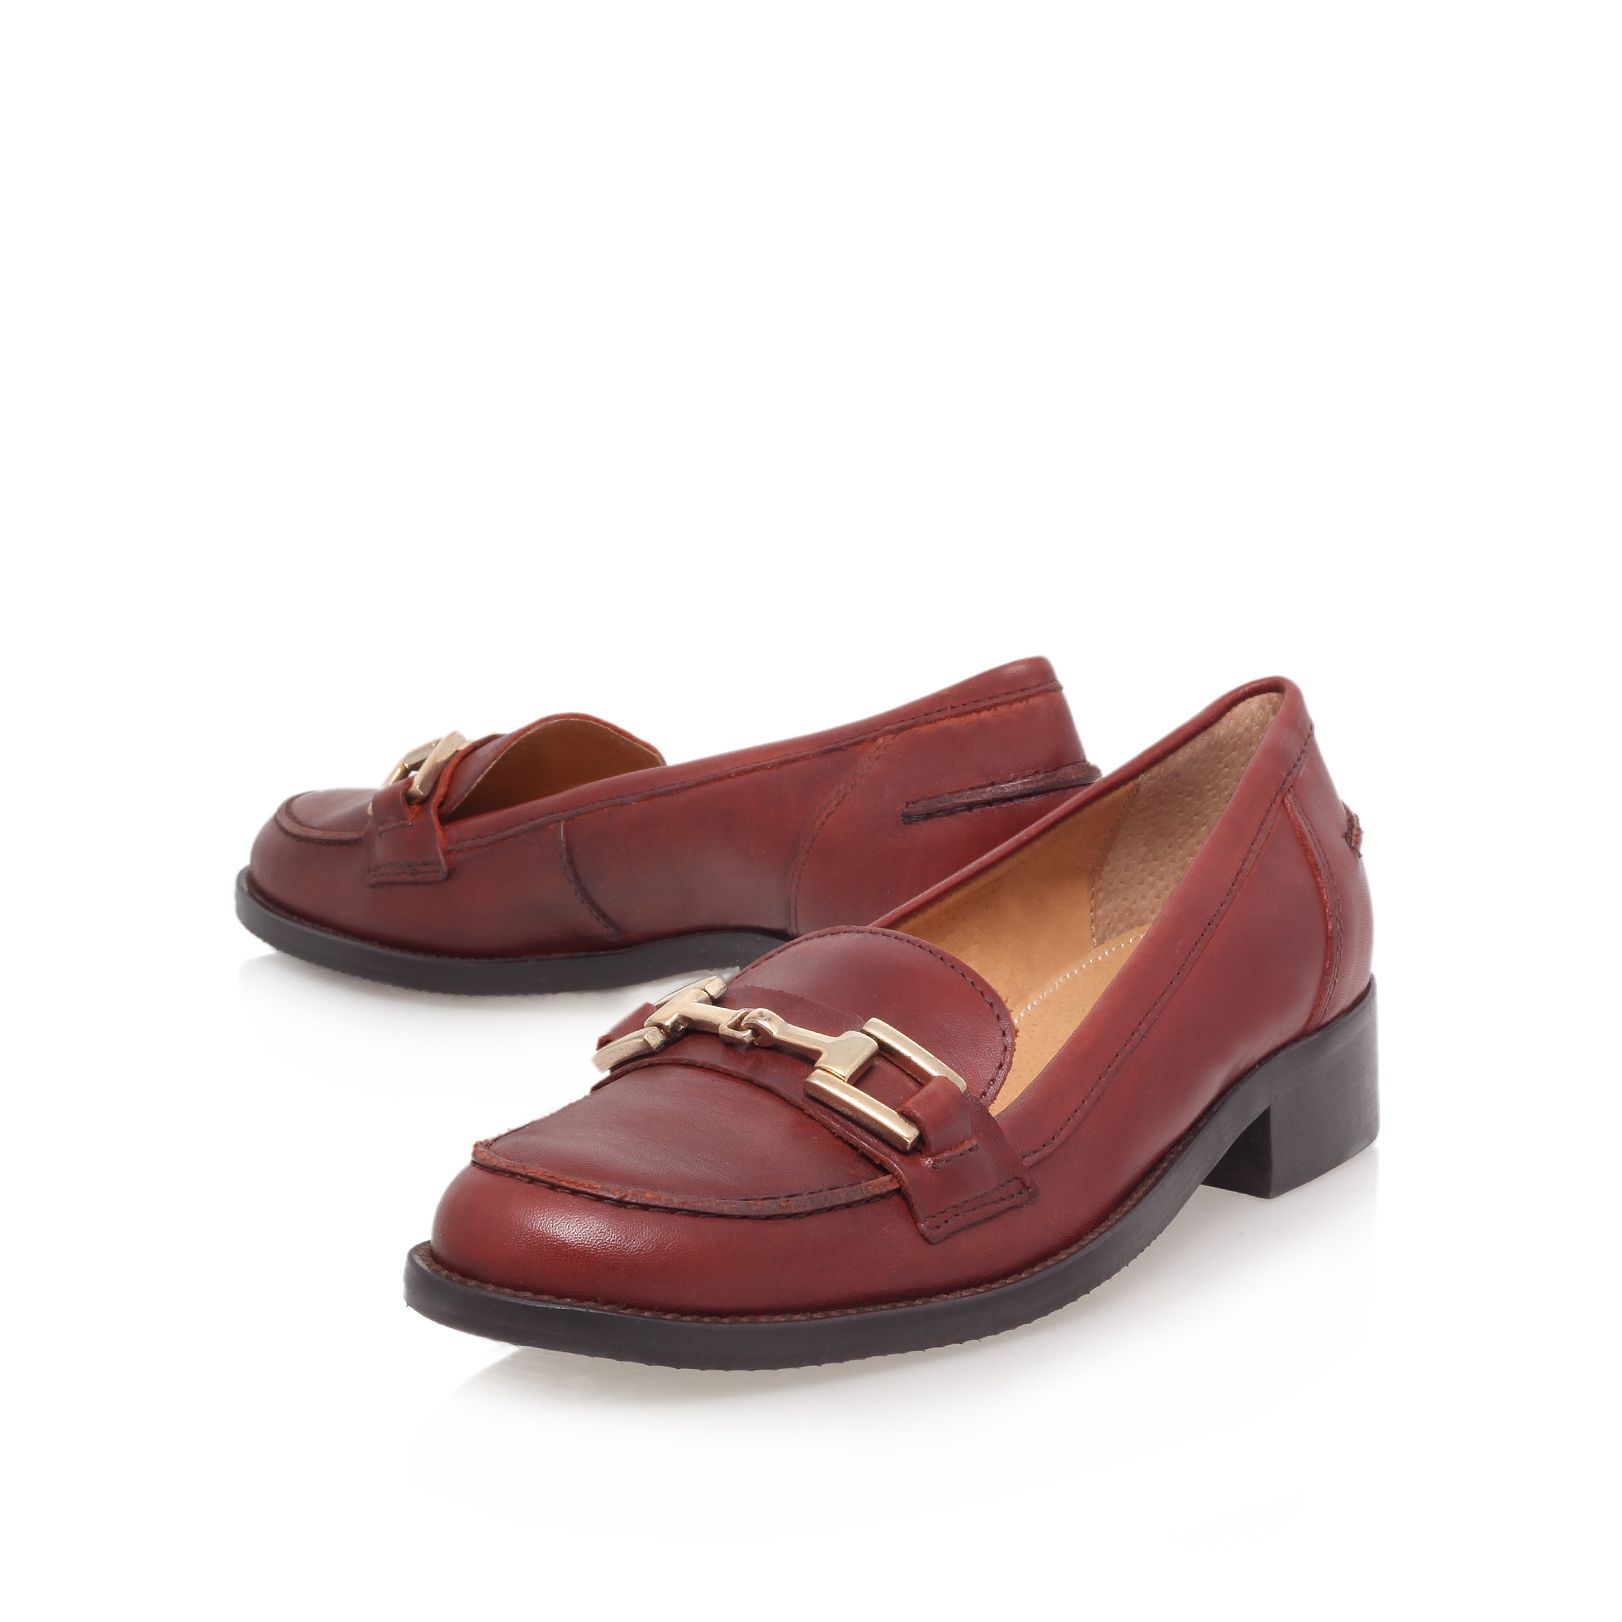 Leonard flat loafer shoes